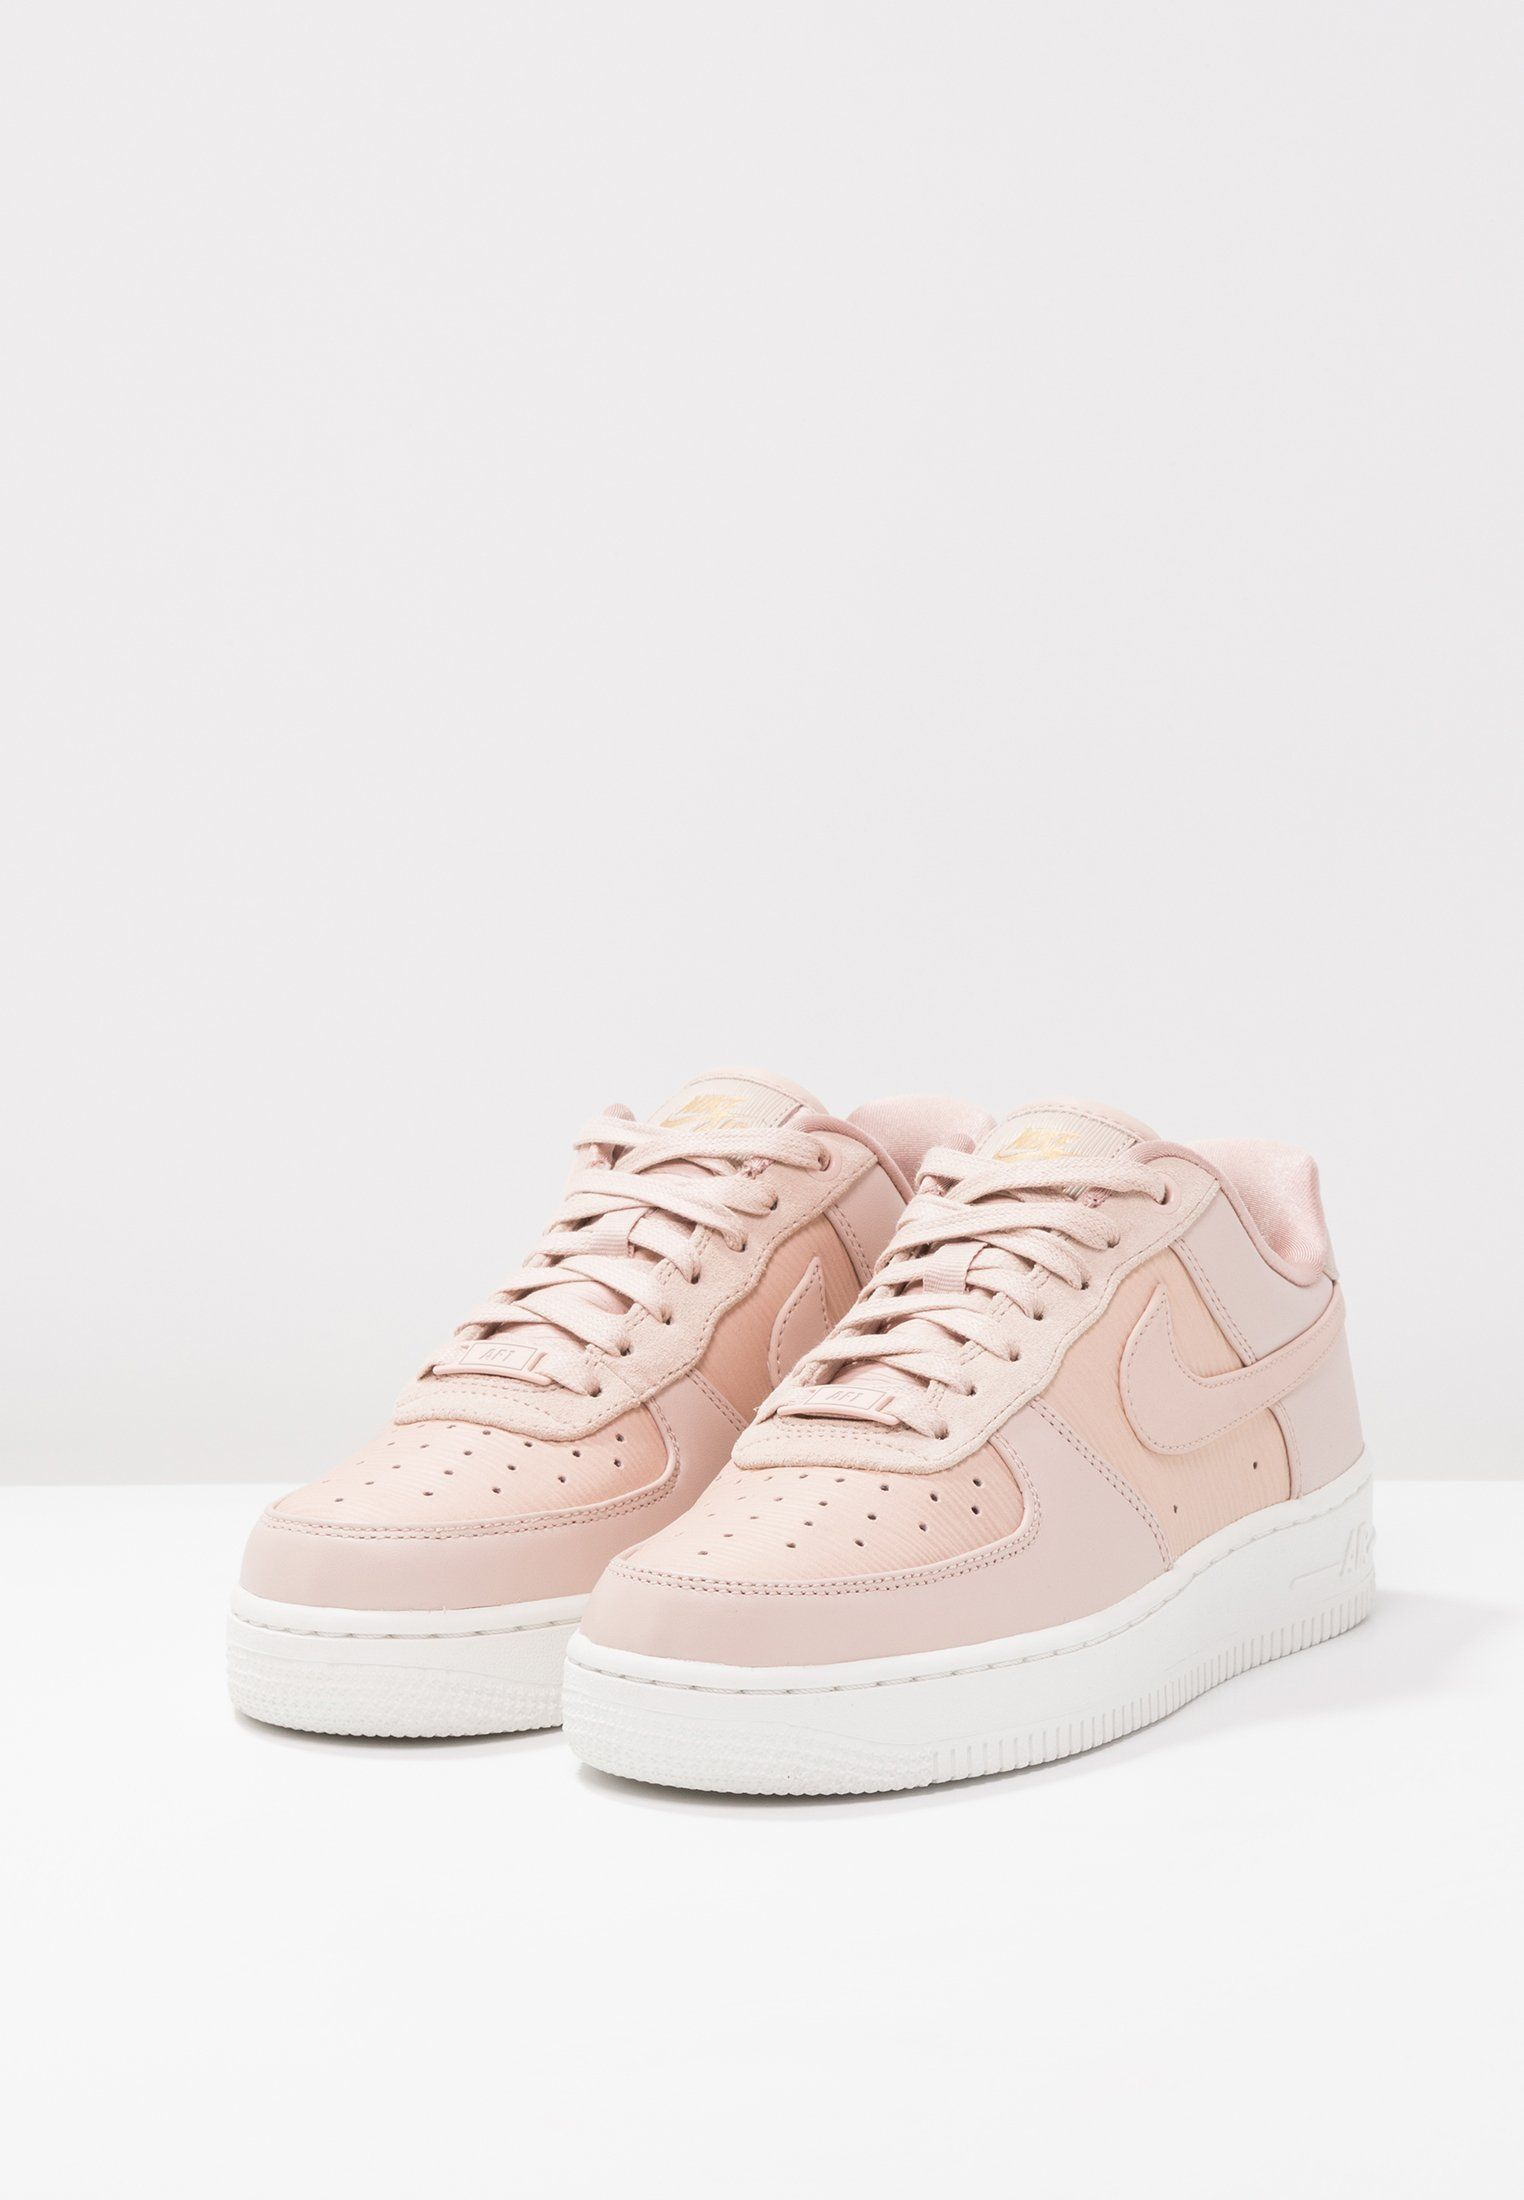 low cost 80580 e4b99 AIR FORCE 1 07 LX - Baskets basses - particle beigesummit whiteparticle  pinkmetallic gold  ZALANDO.FR   giftryapp